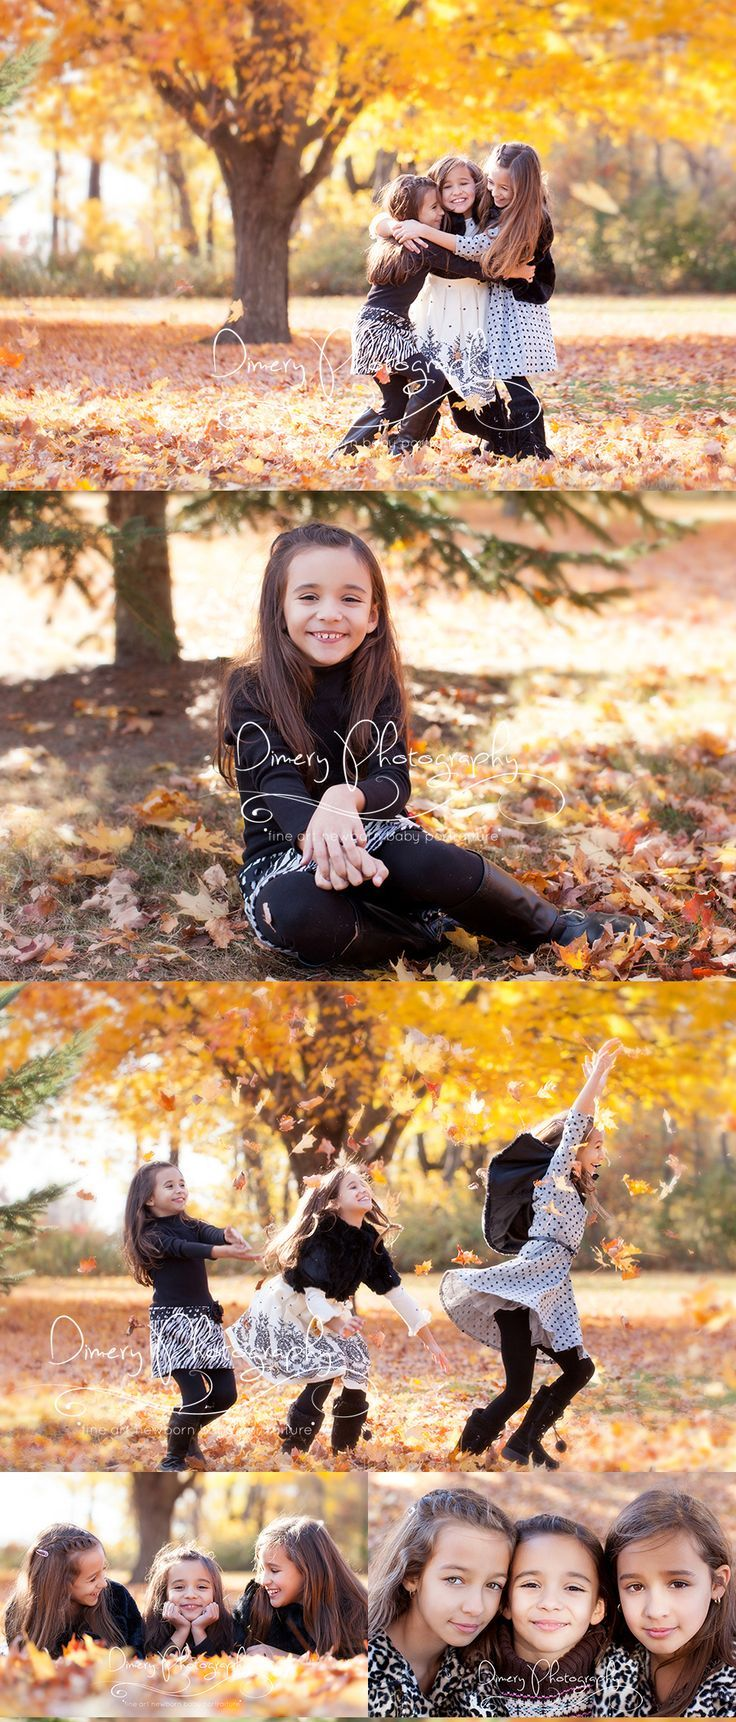 autumn playful kids photo idea